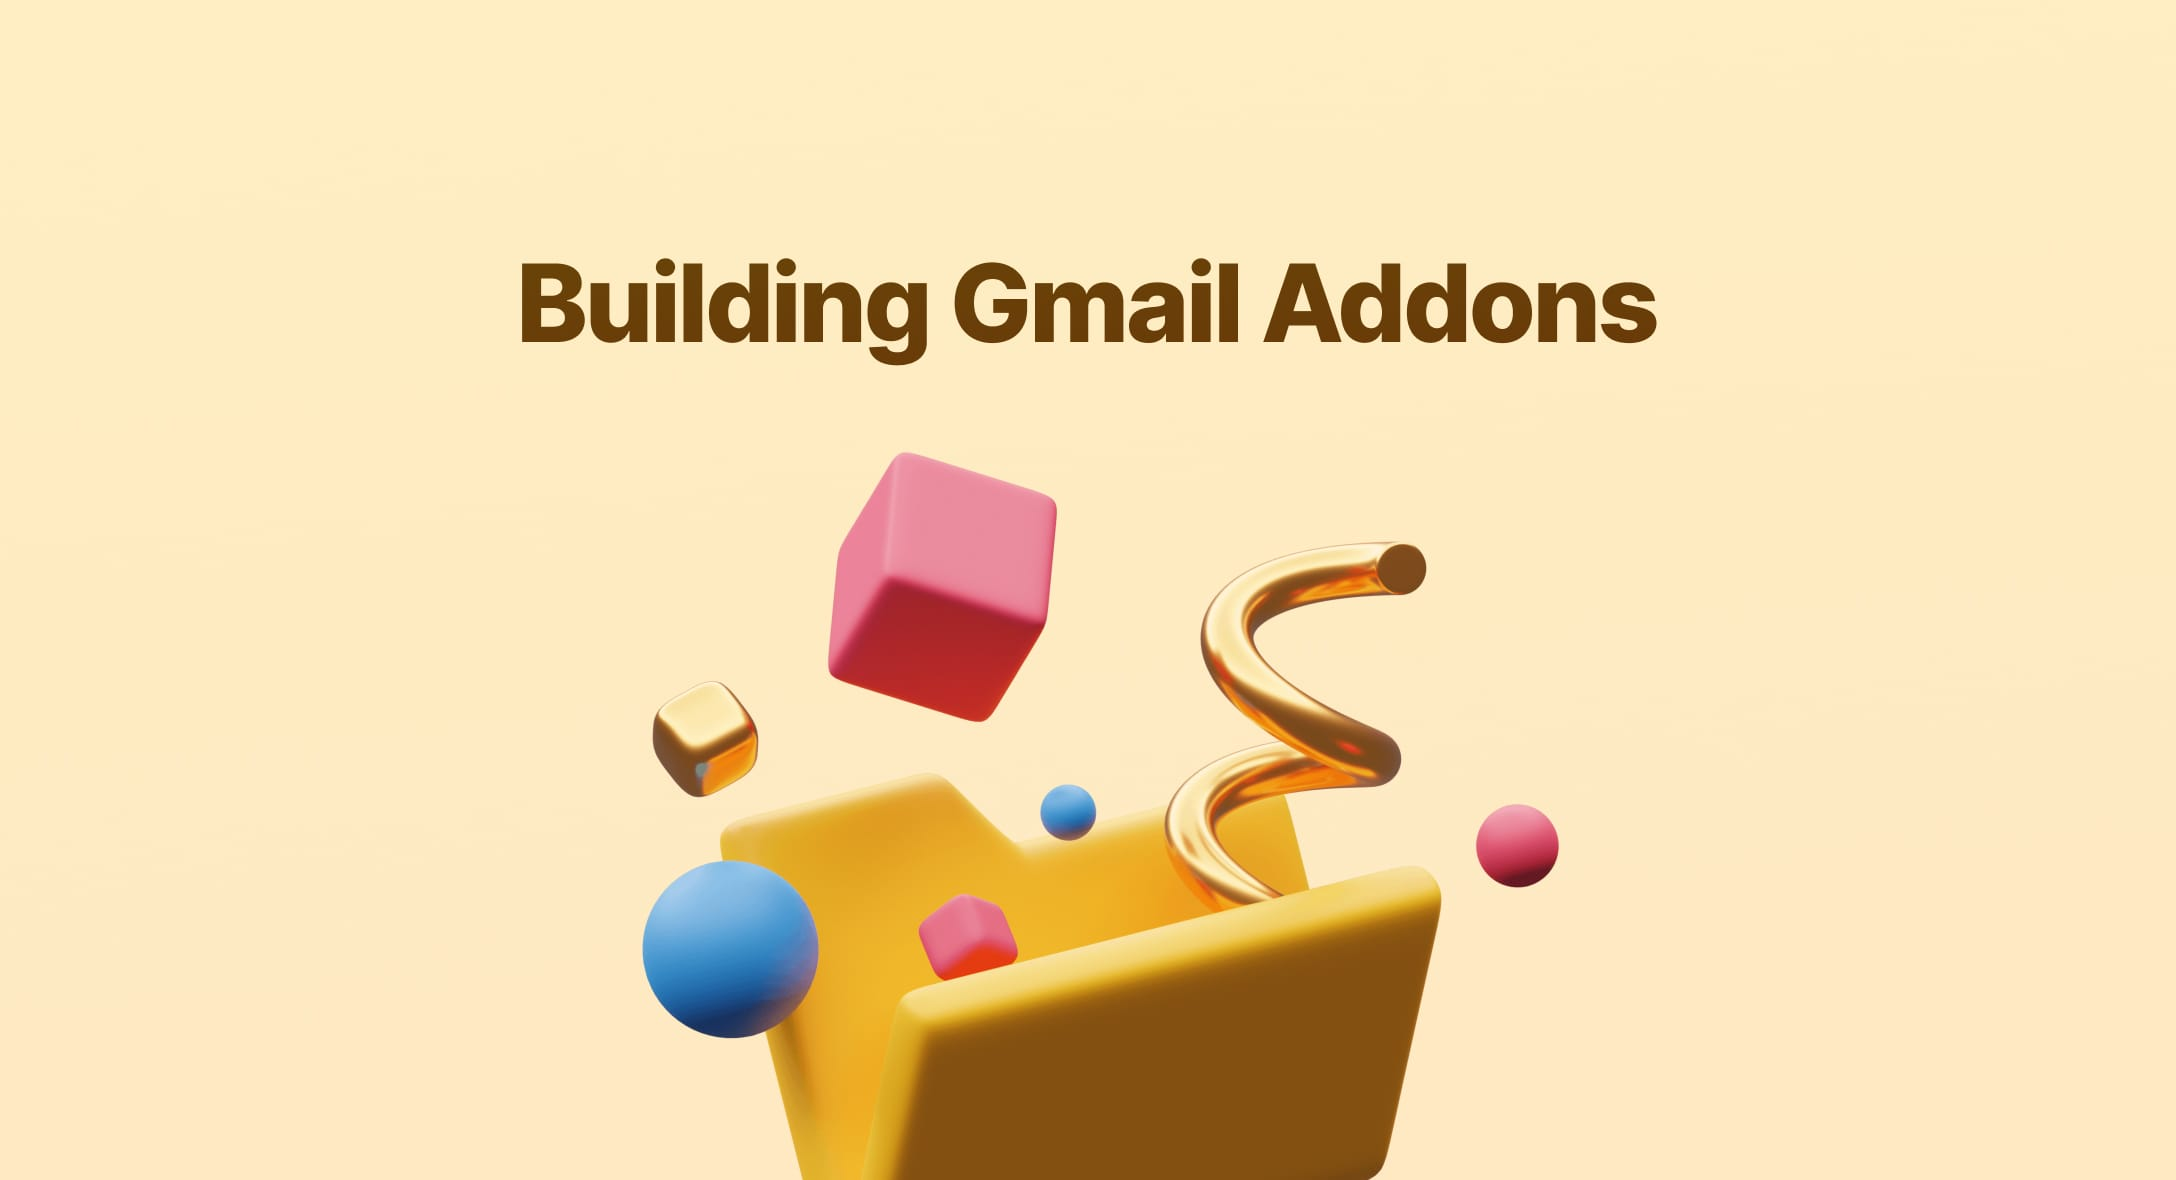 Building Gmail Addons